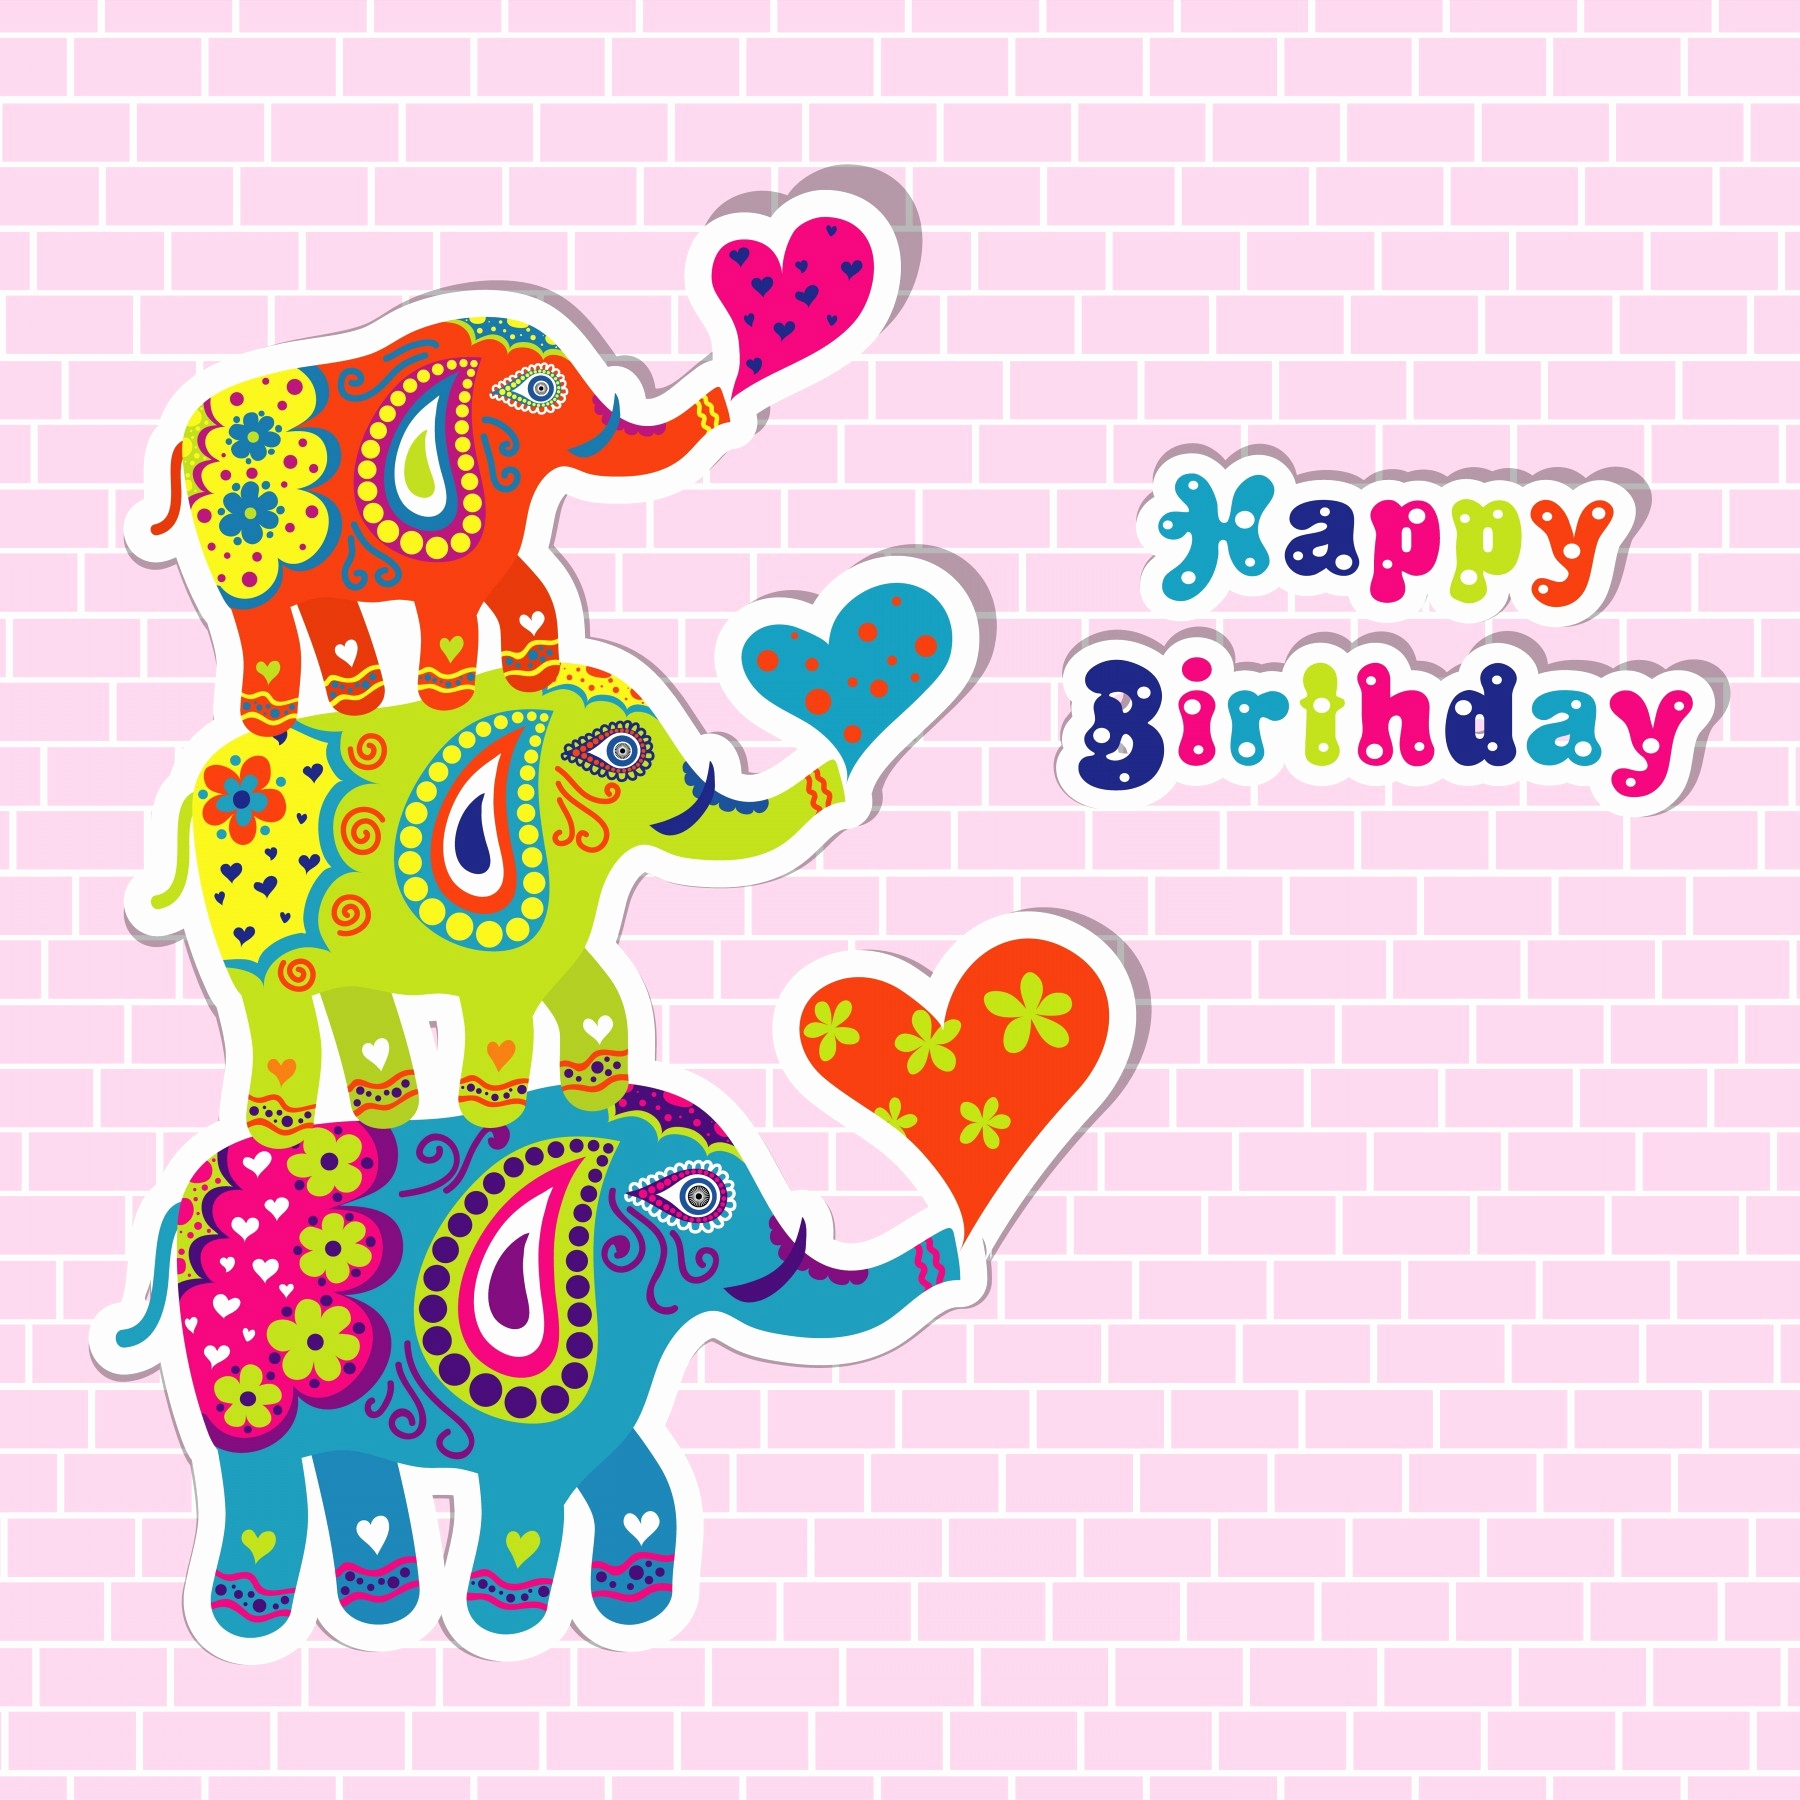 Happy Birthday Card In Spanish To Print Best Happy Birthday Wishes